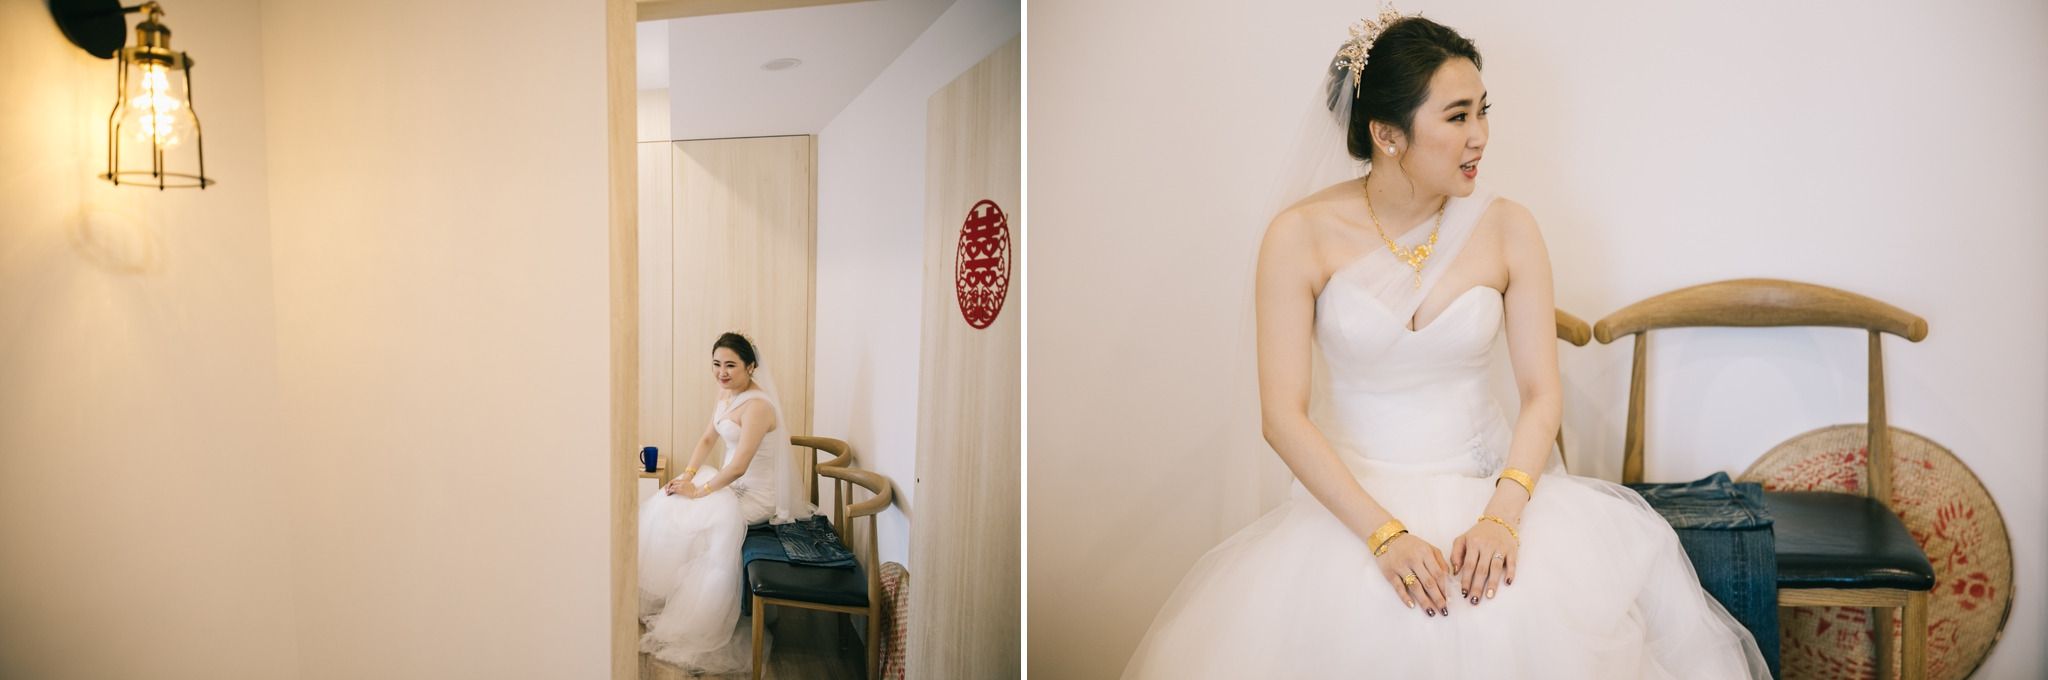 Keddy+Richard-wedding-新莊頤品飯店-143.jpg